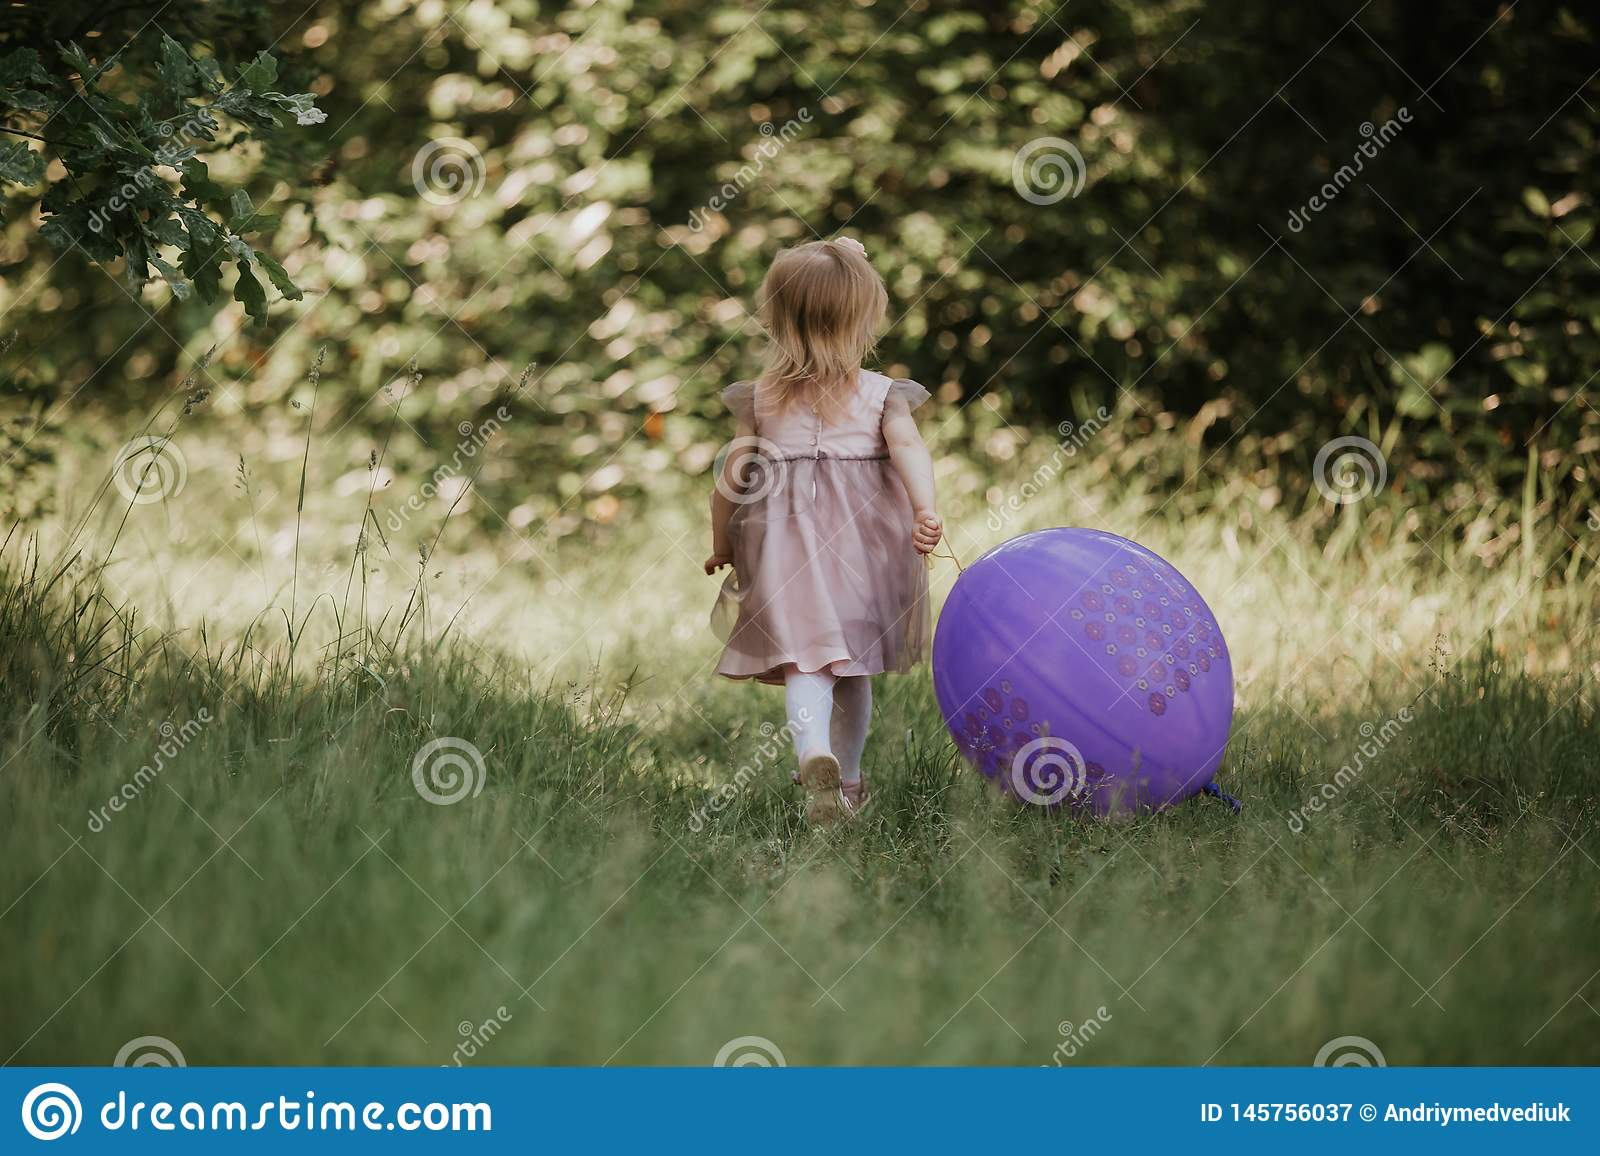 Stylish Baby Girl 2 5 Year Old Holding Big Balloon Wearing Trendy Pink Dress In Meadow Playful Birthday Party Little With A The Park